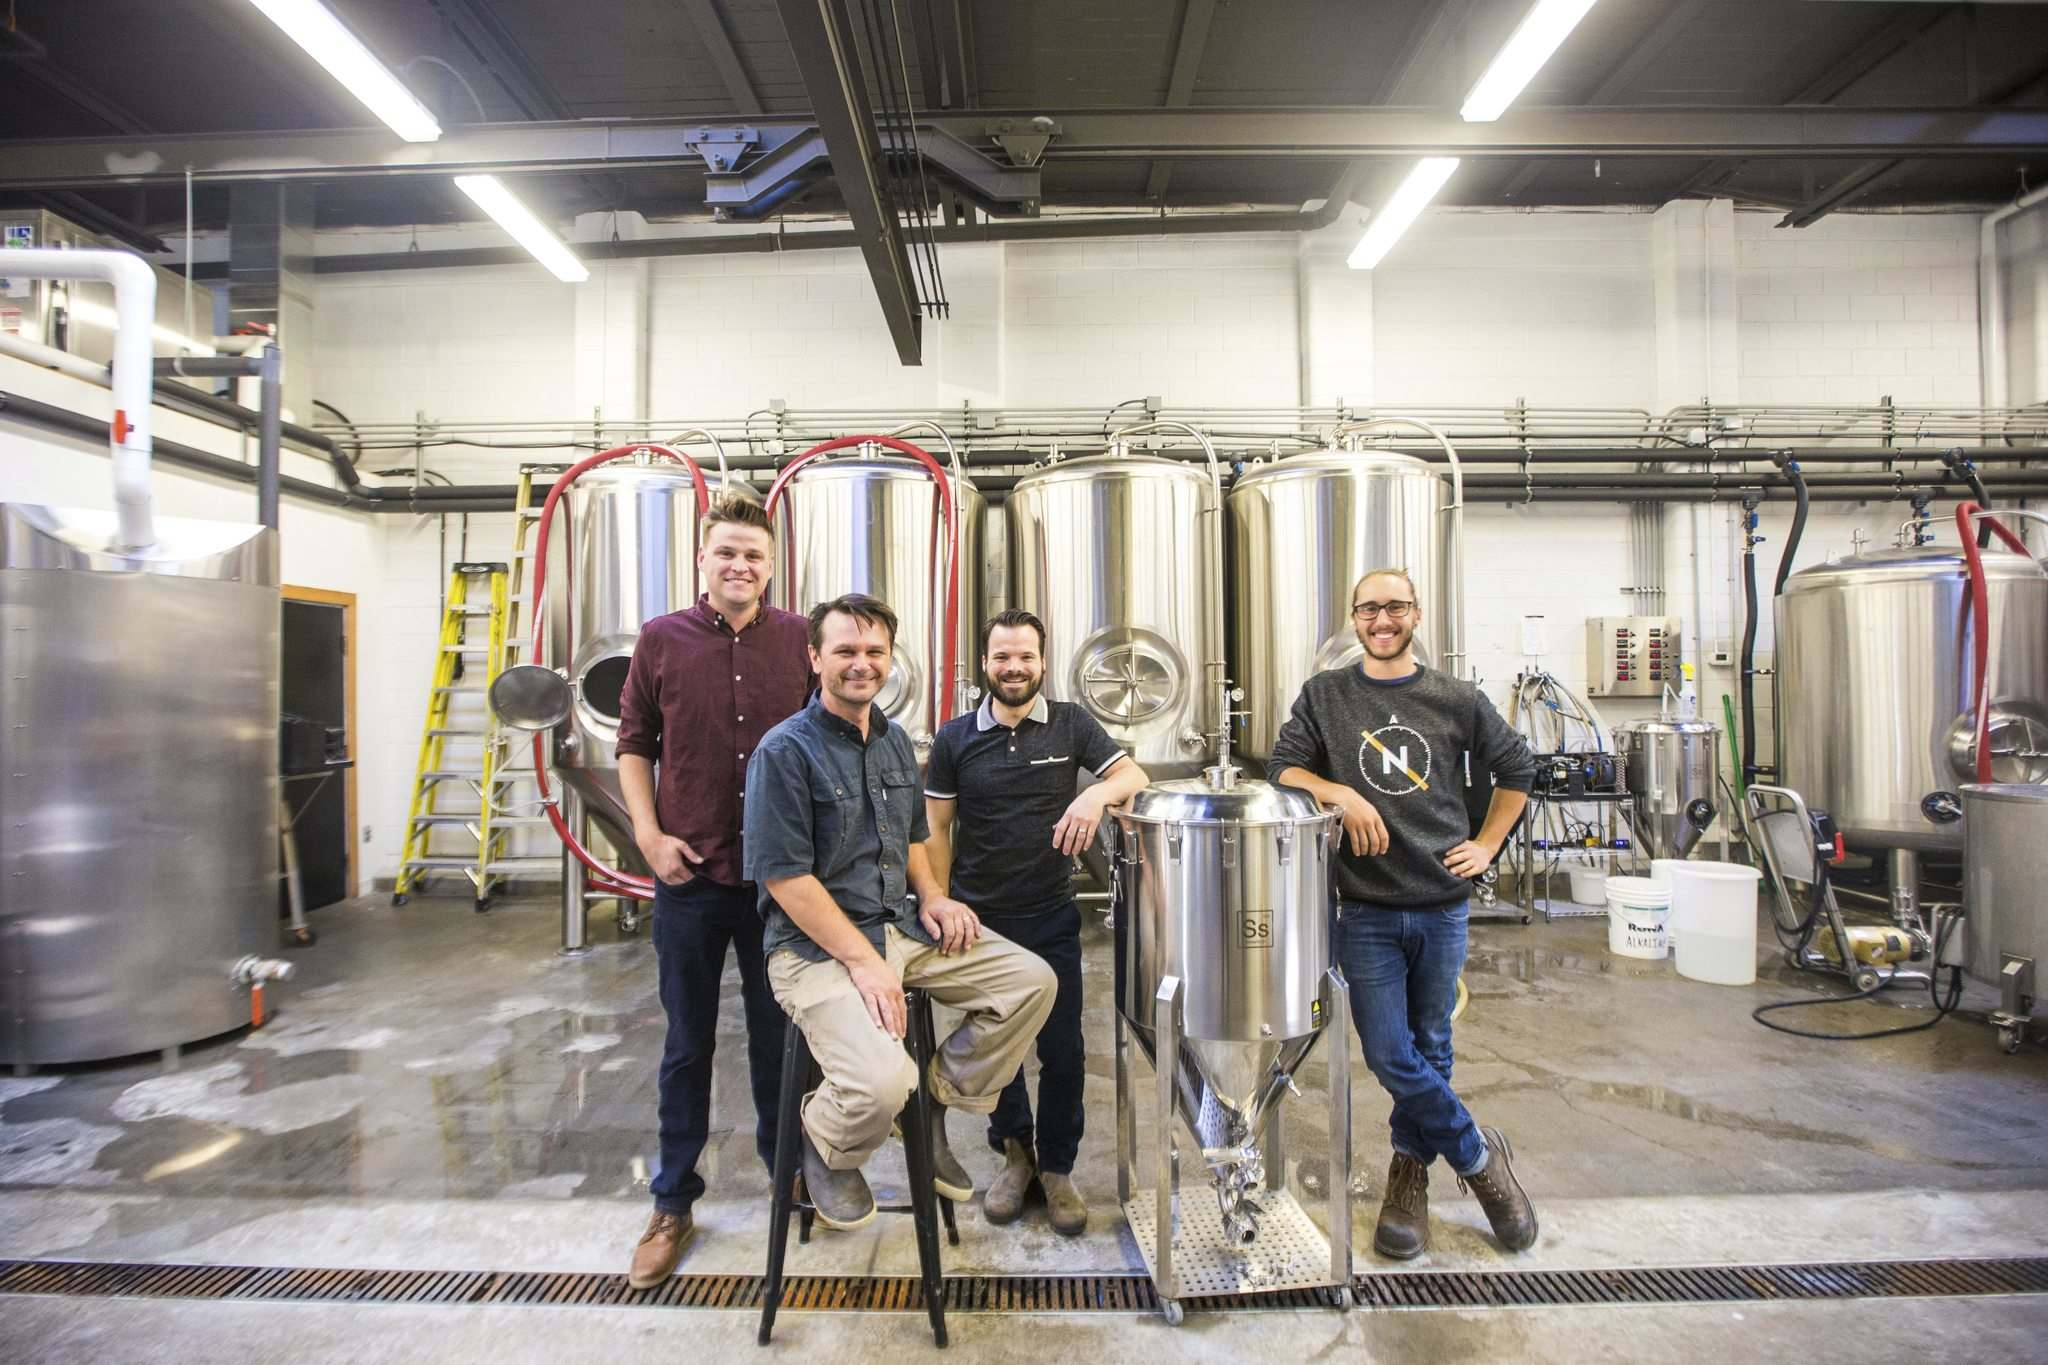 Ben Myers (left), Mark Borowski, Matthew Sabourin, and Dylan Picton at the Nonsuch Brewing Co. PHOTOS BY MIKAELA MACKENZIE / WINNIPEG FREE PRESS